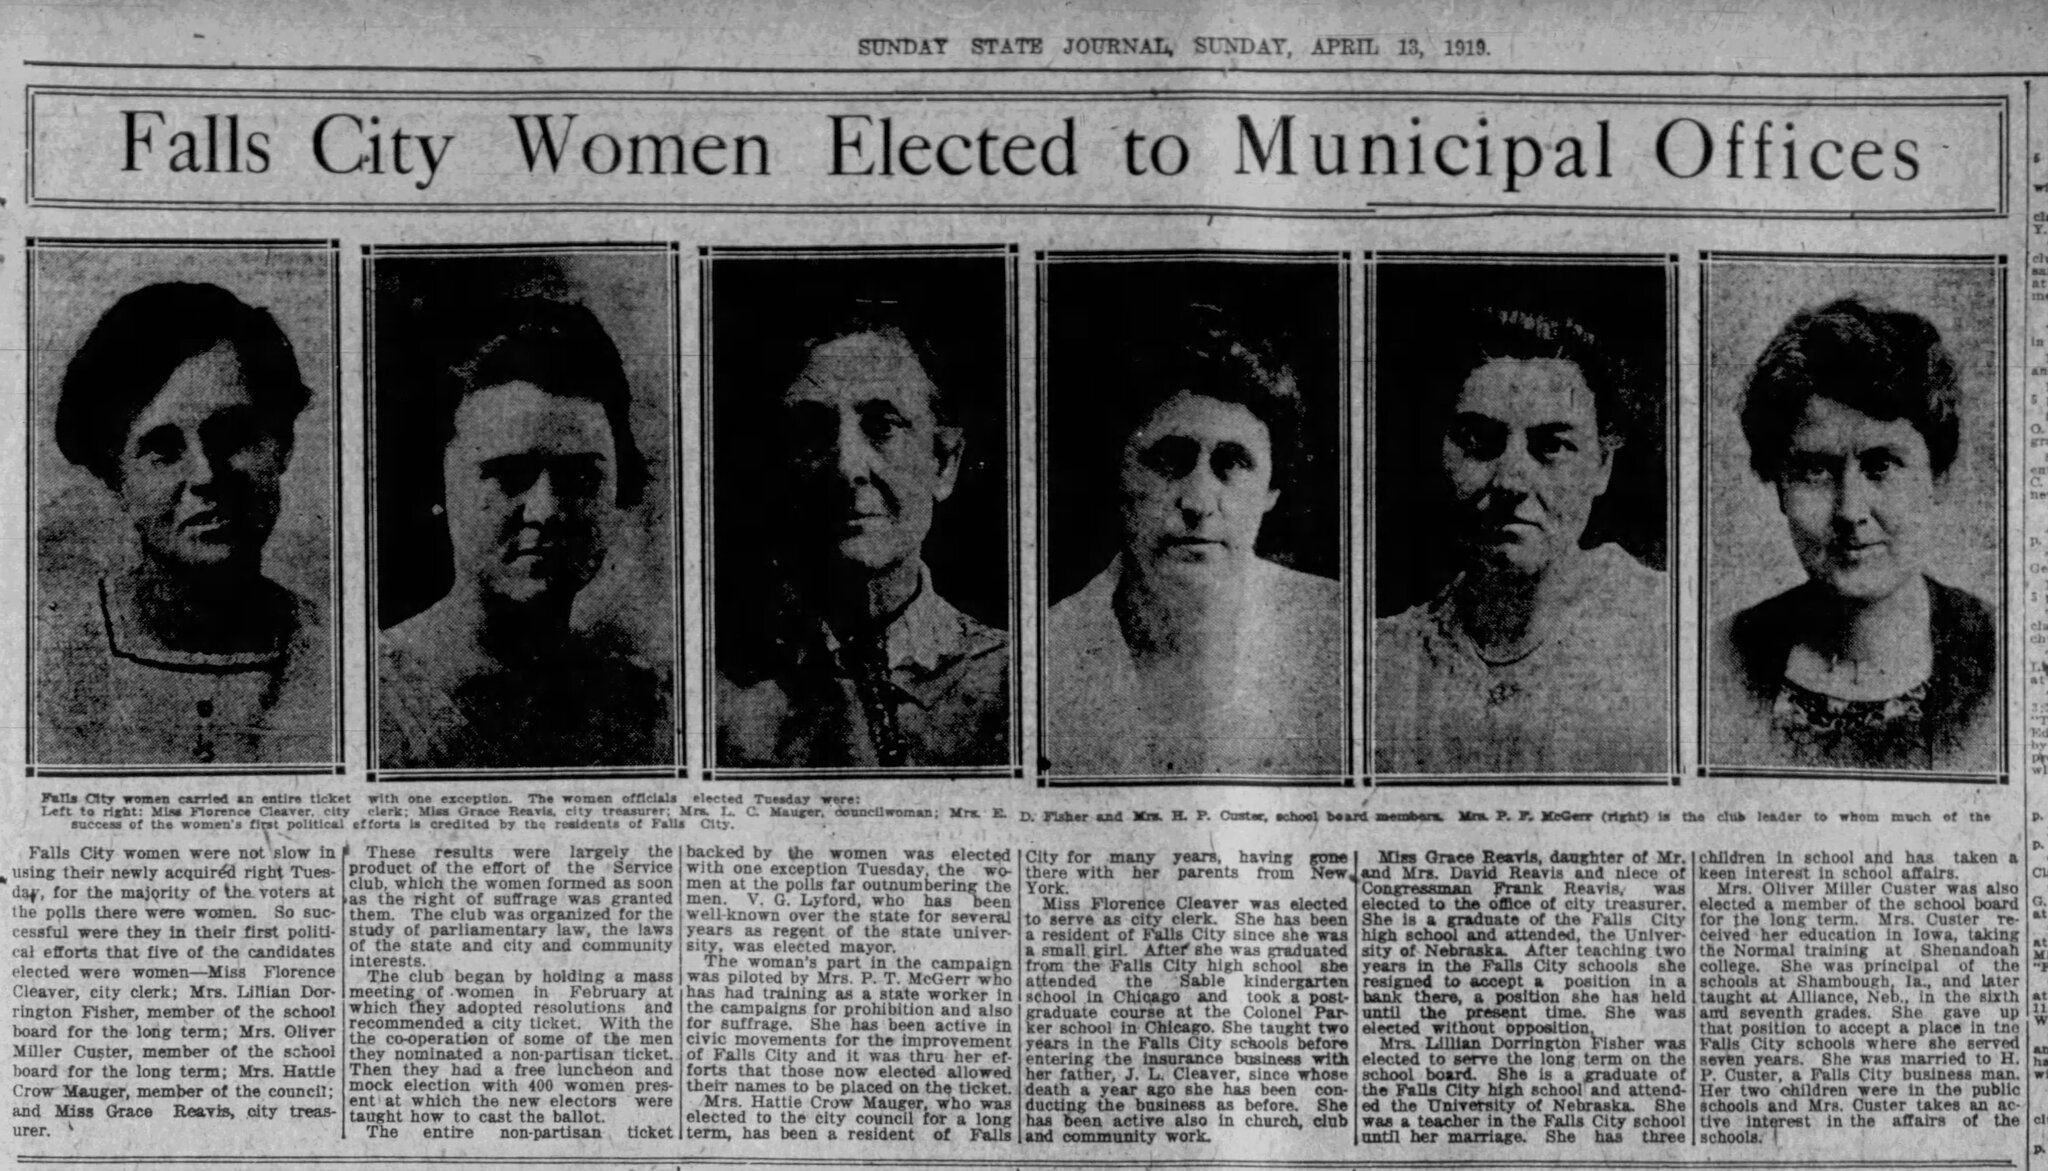 Newspaper Article Detailing the Recent Municipal Election in Which Women Were Elected to